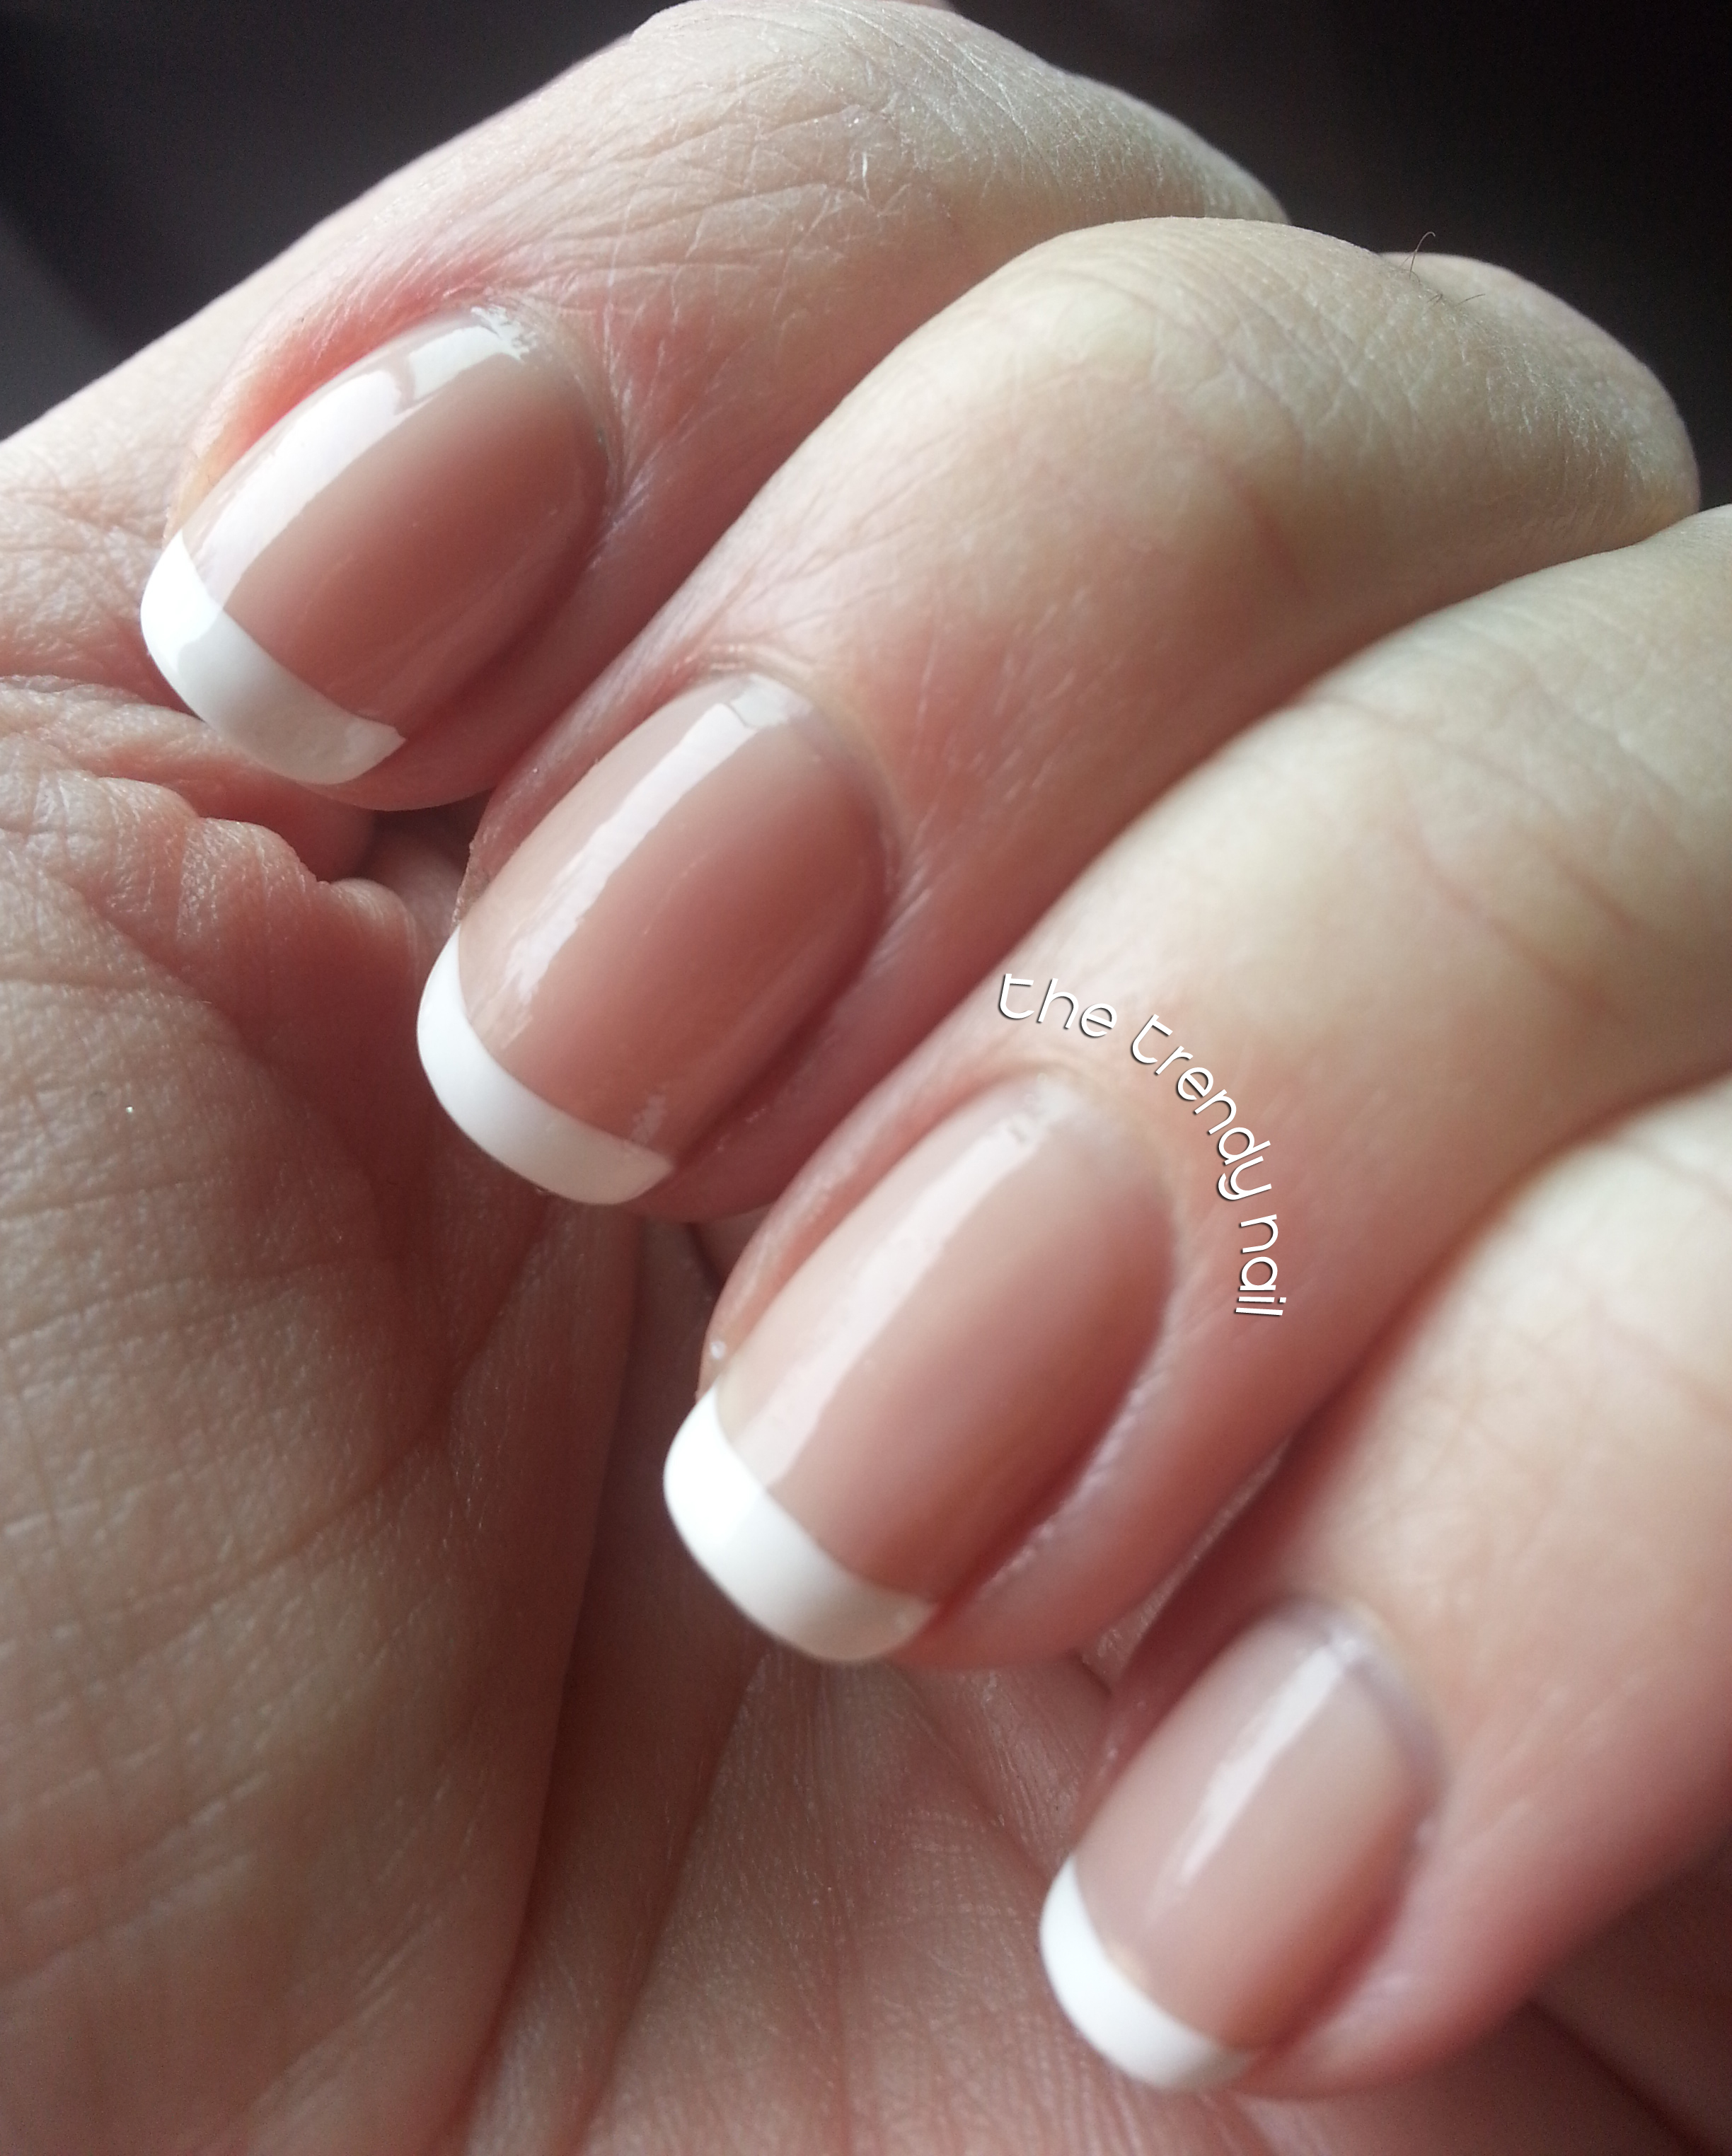 Classic French Manicure - The Trendy Nail | Nail Blog